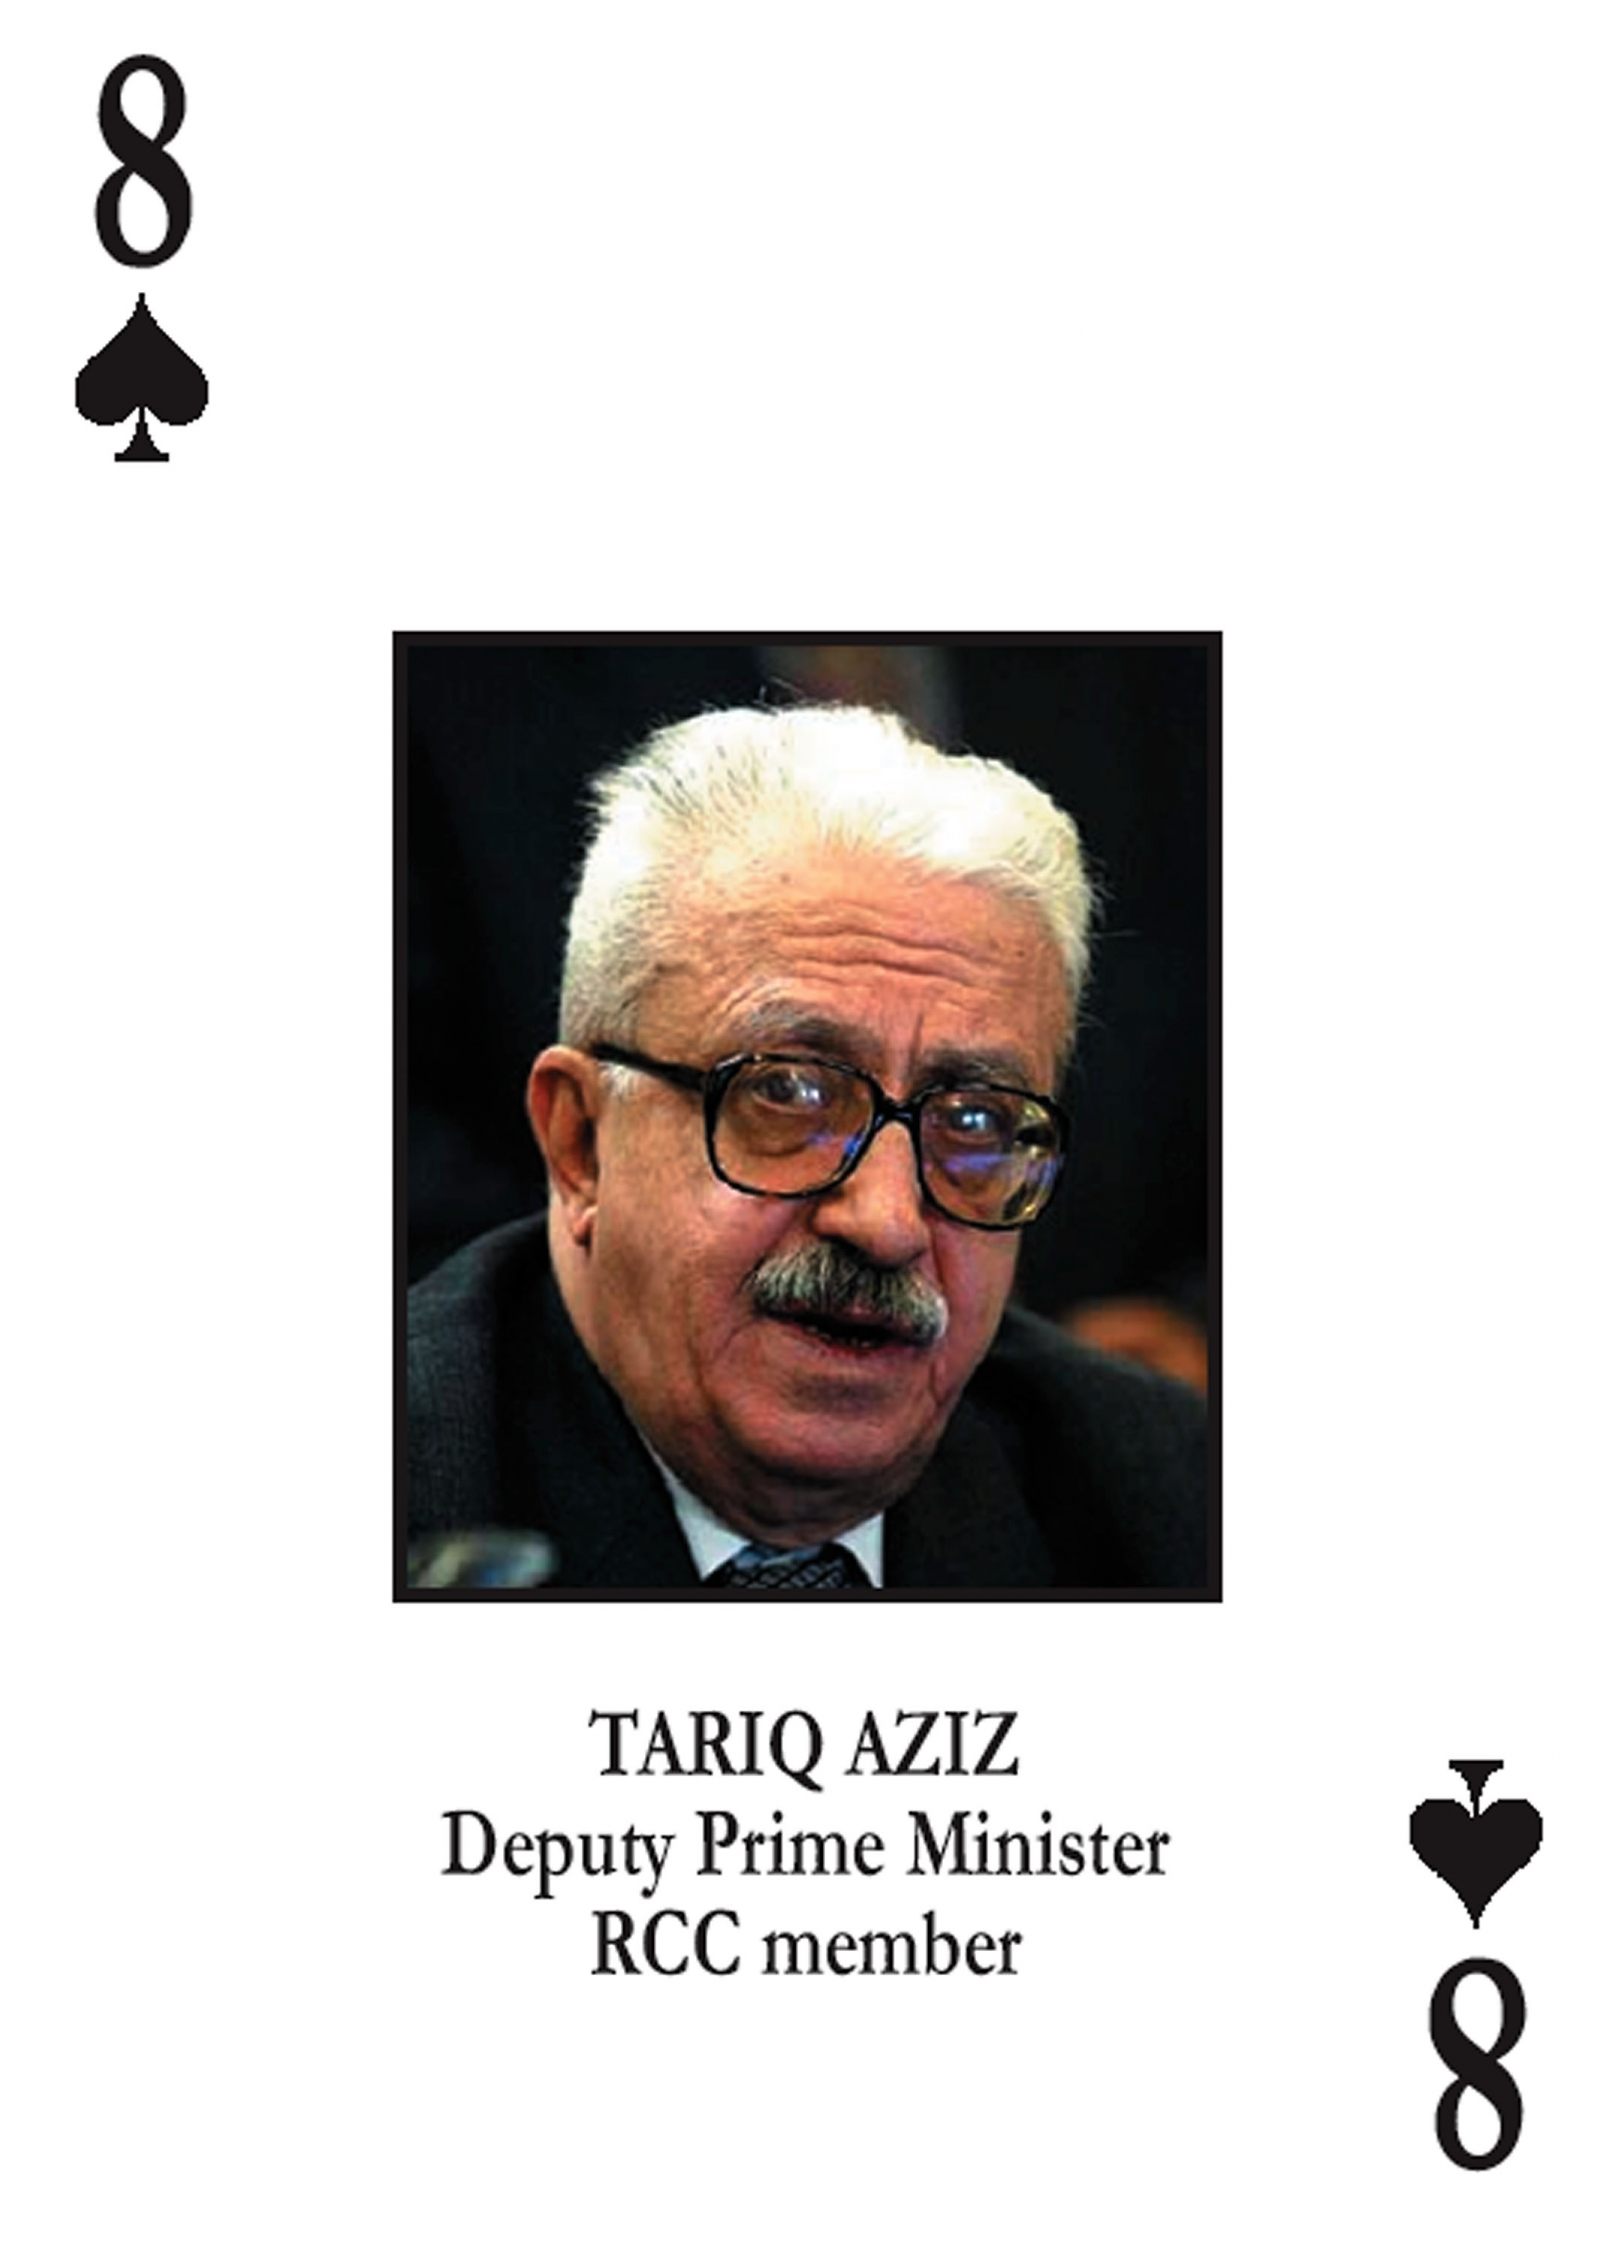 Tariq Aziz eight of Spades